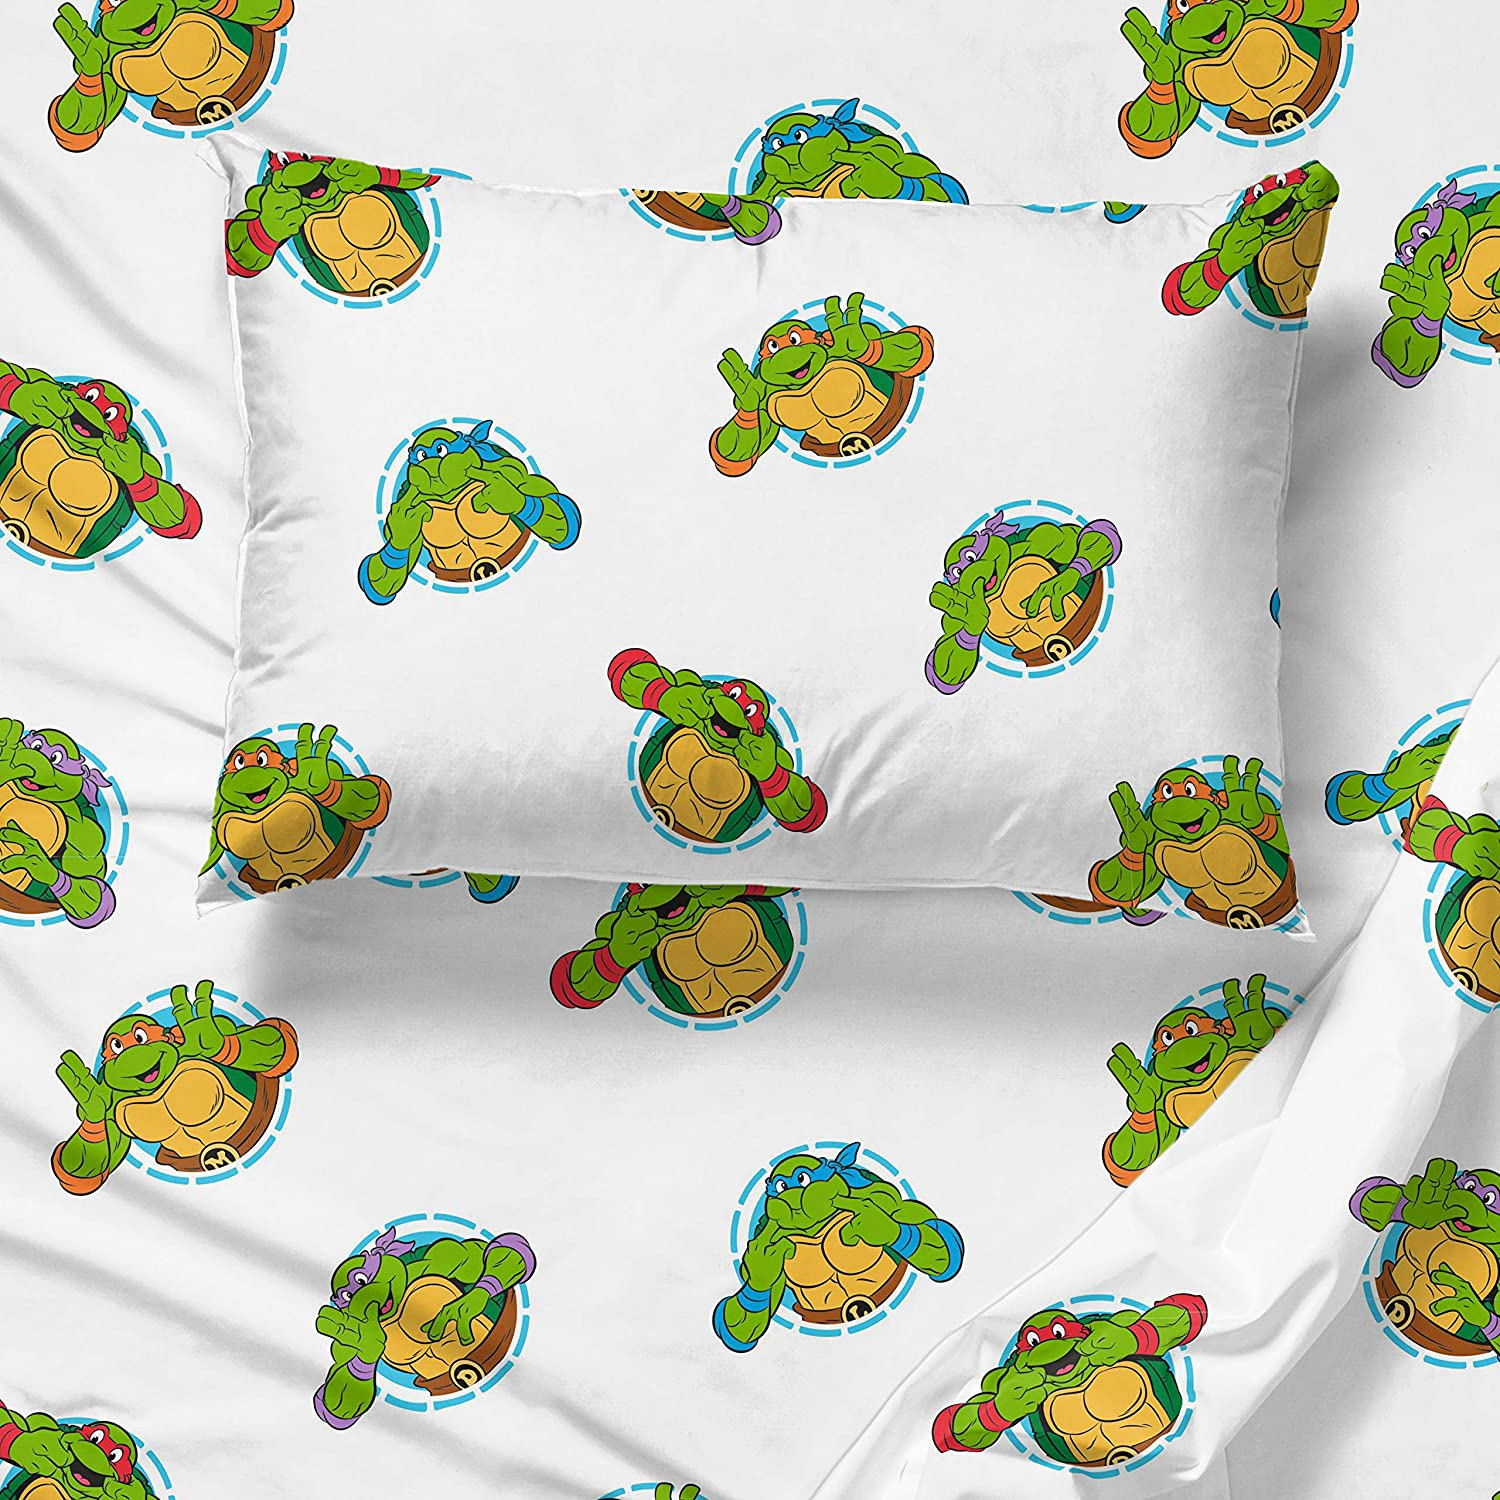 Official Nickelodeon Product Jay Franco Nickelodeon Teenage Mutant Ninja Turtles Silly Green Full Sheet Set Fade Resistant Microfiber Sheets 4 Piece Set Super Soft and Cozy Kid/'s Bedding